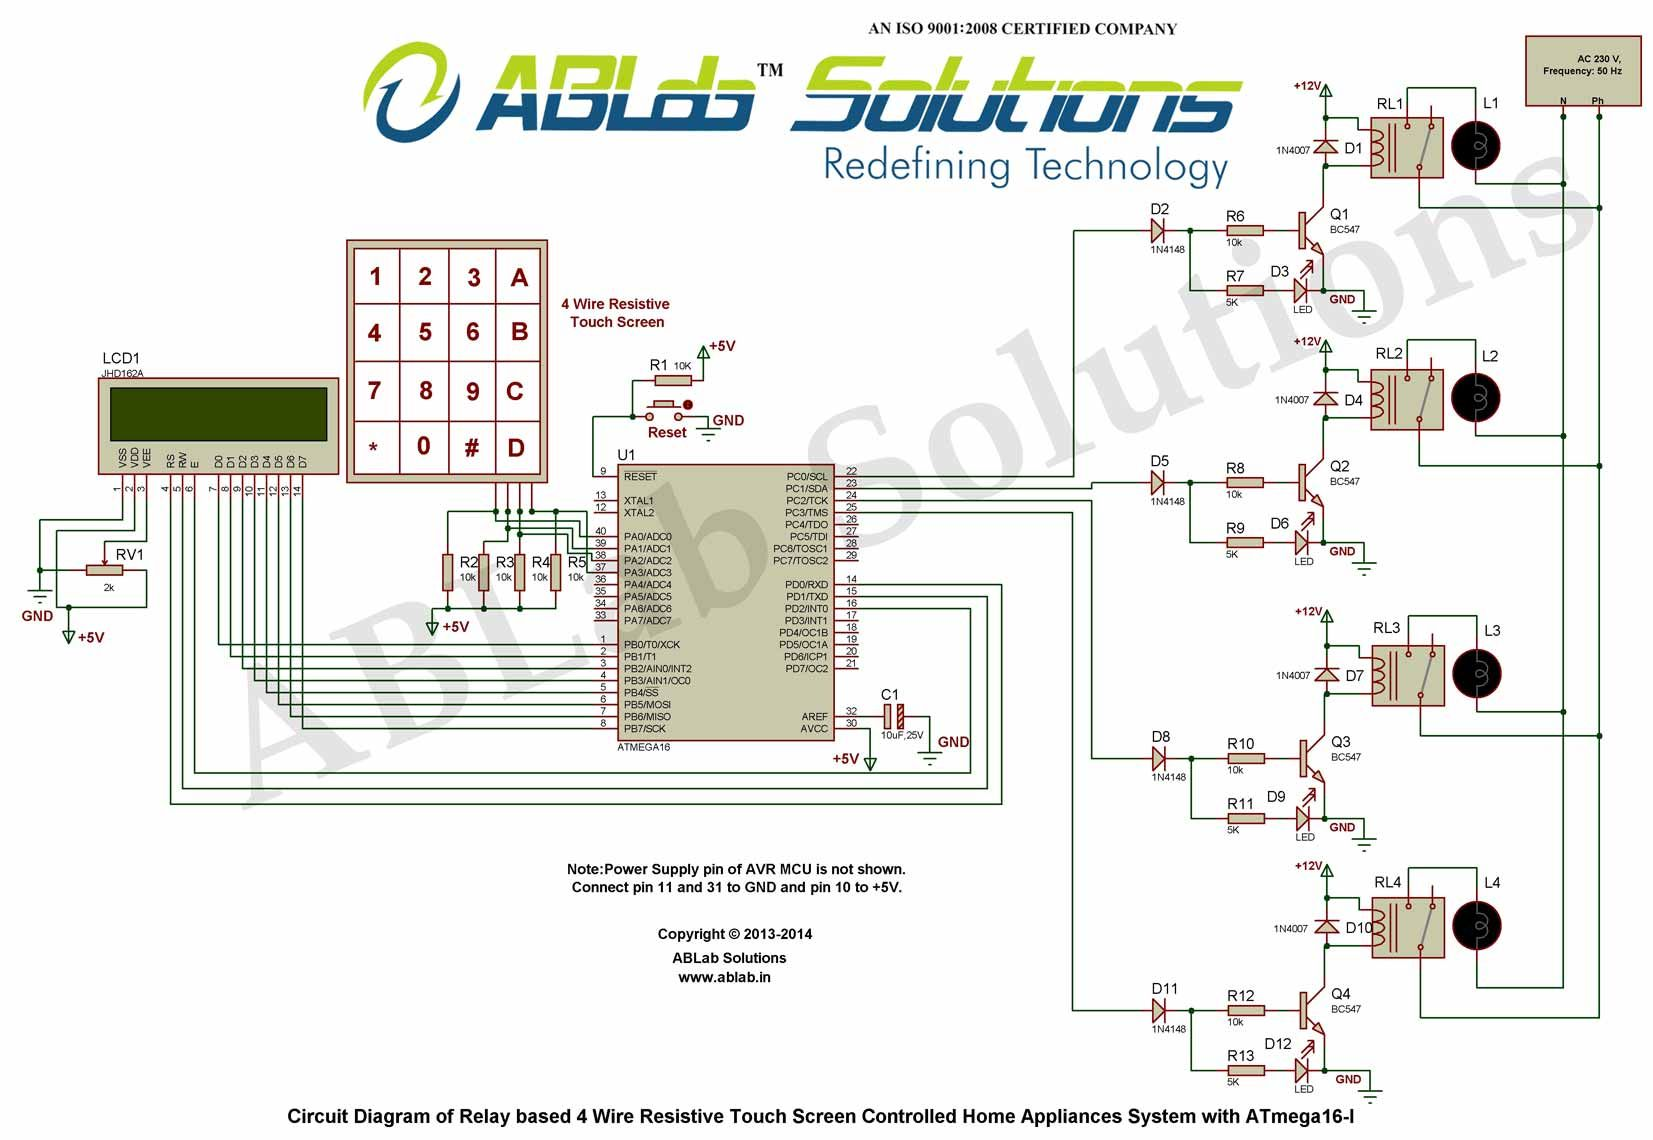 small resolution of relay based 4 wire resistive touch screen controlled home appliances system with avr atmega16 microcontroller i circuit diagram